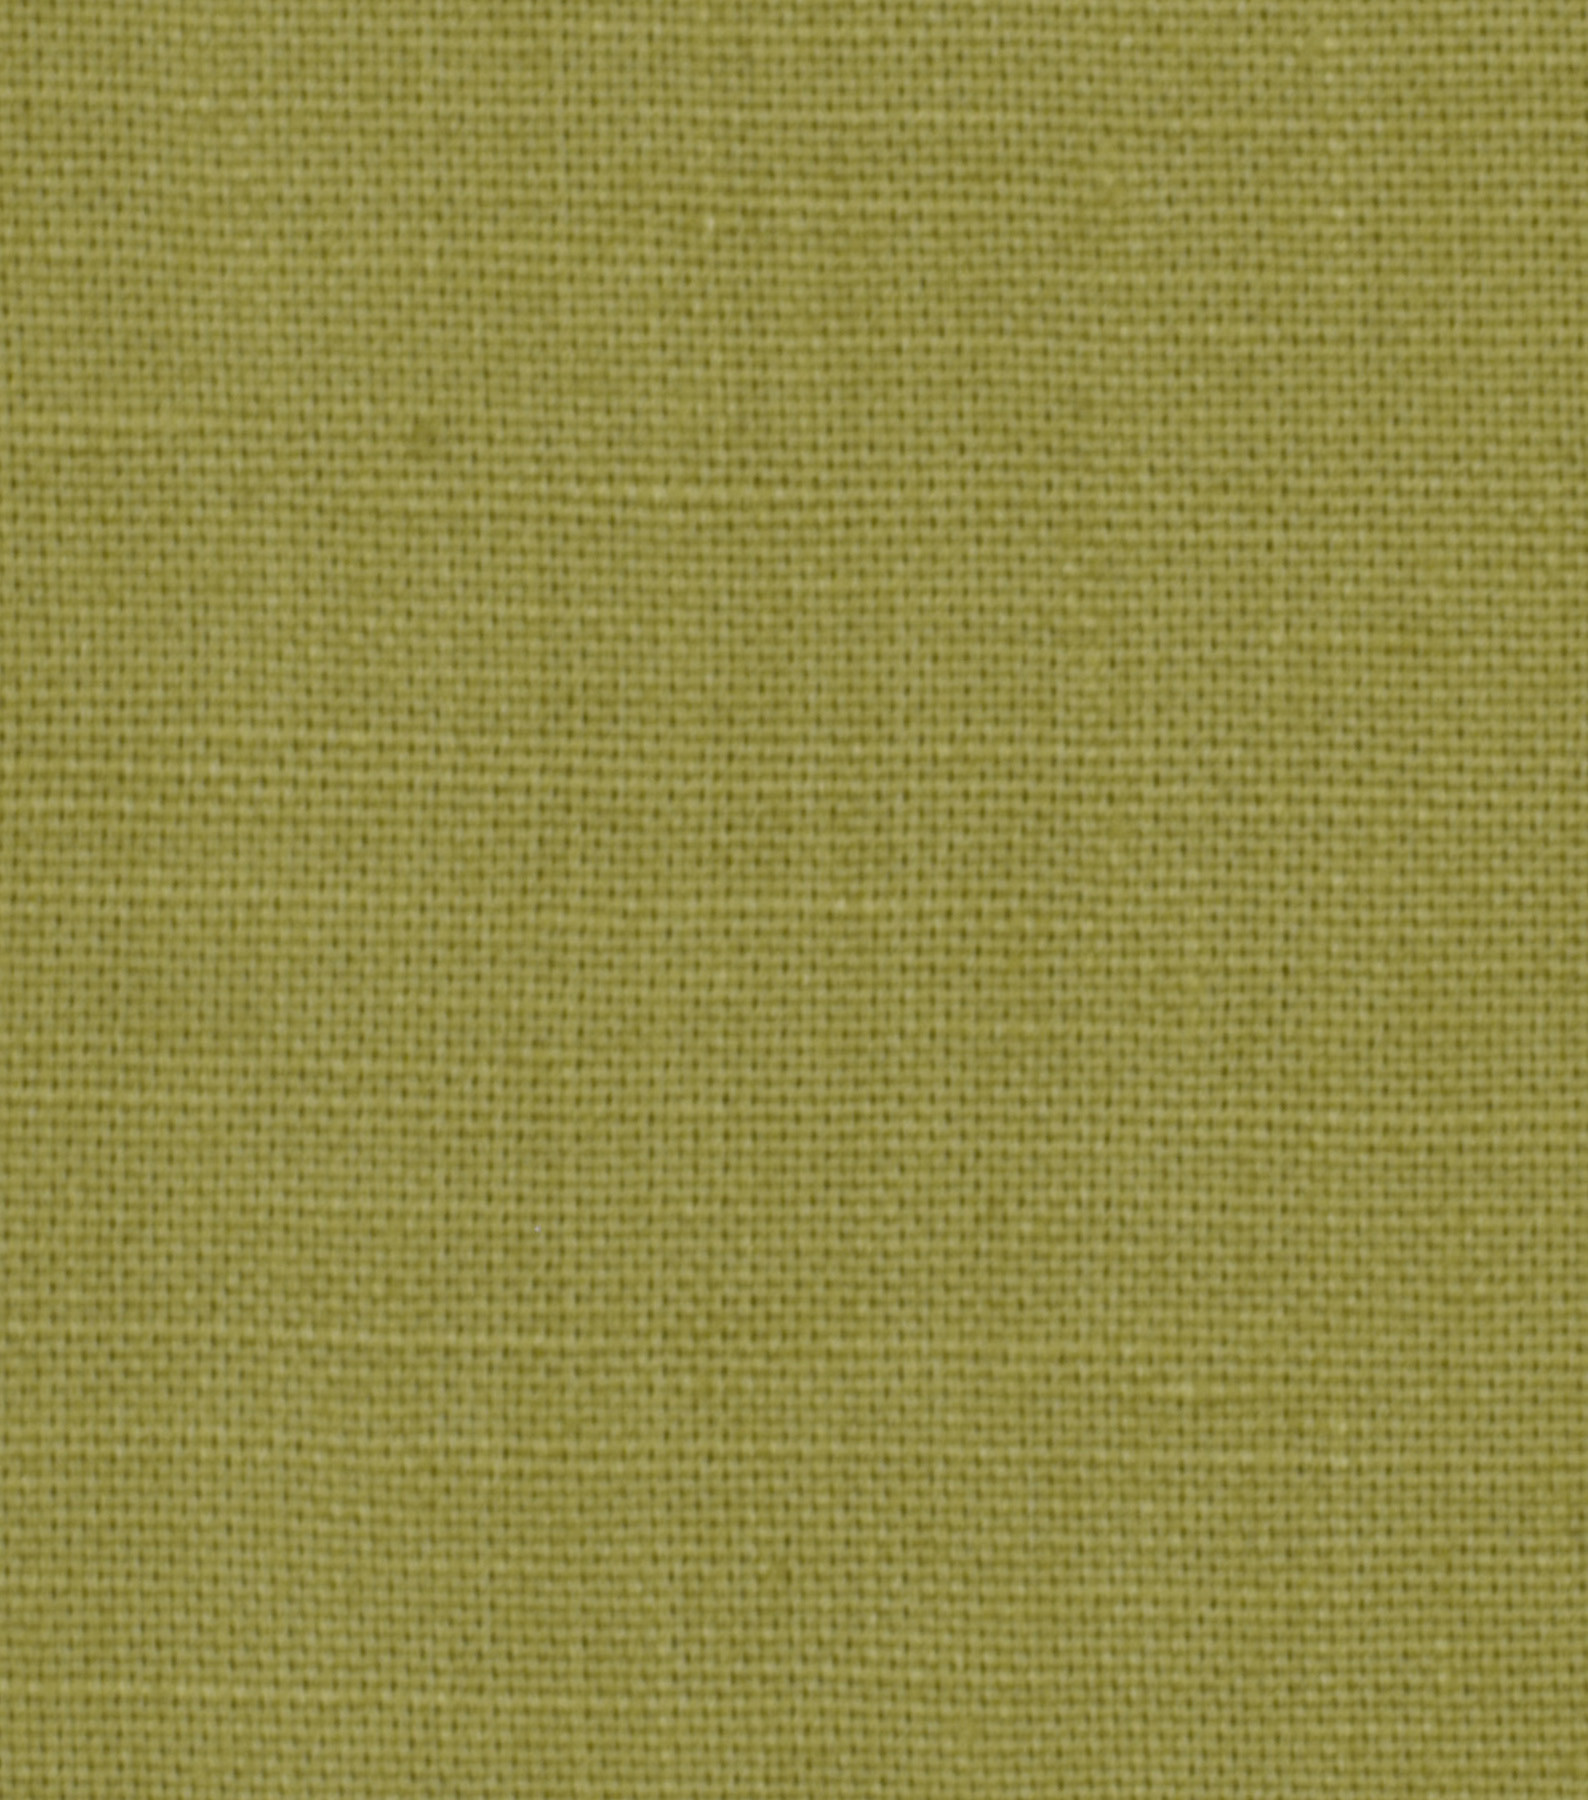 Home Decor 8\u0022x8\u0022 Fabric Swatch-Solid Fabric Signature Series Kilrush Peridot